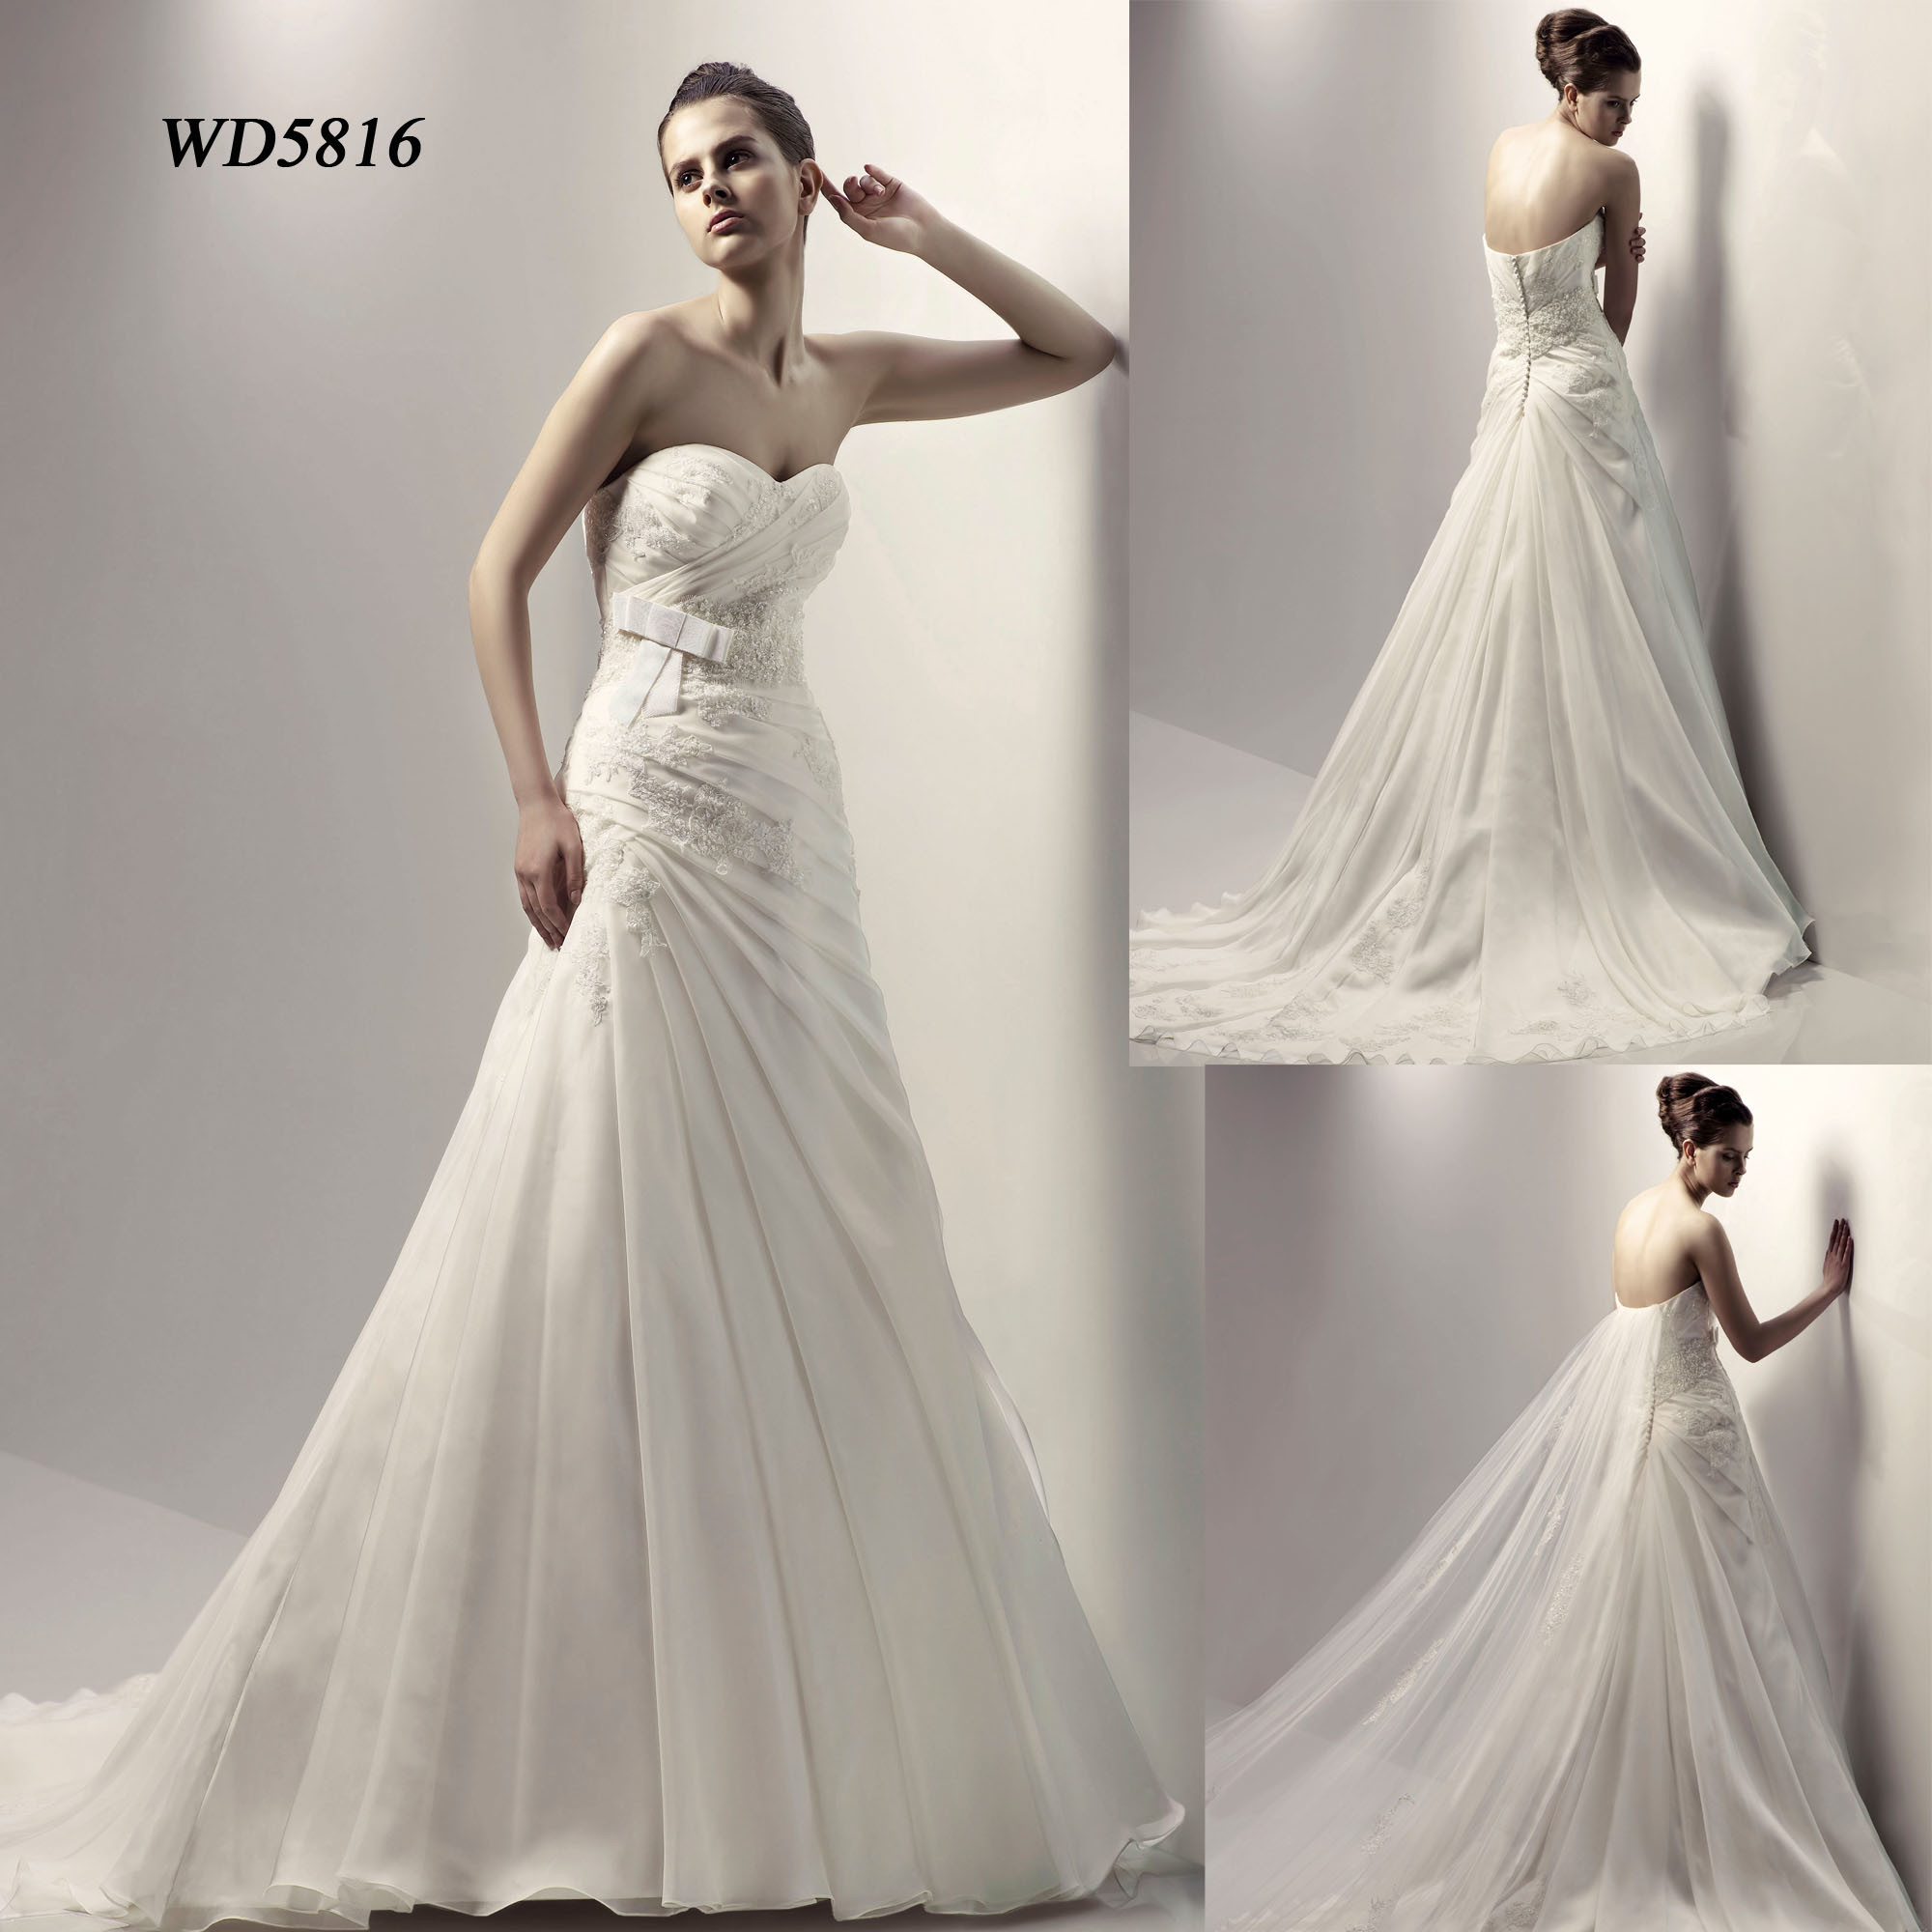 Website for wedding dresses everything you do says something perfect innovative chinese website for wedding dresses looks cool design with website for wedding dresses ombrellifo Choice Image